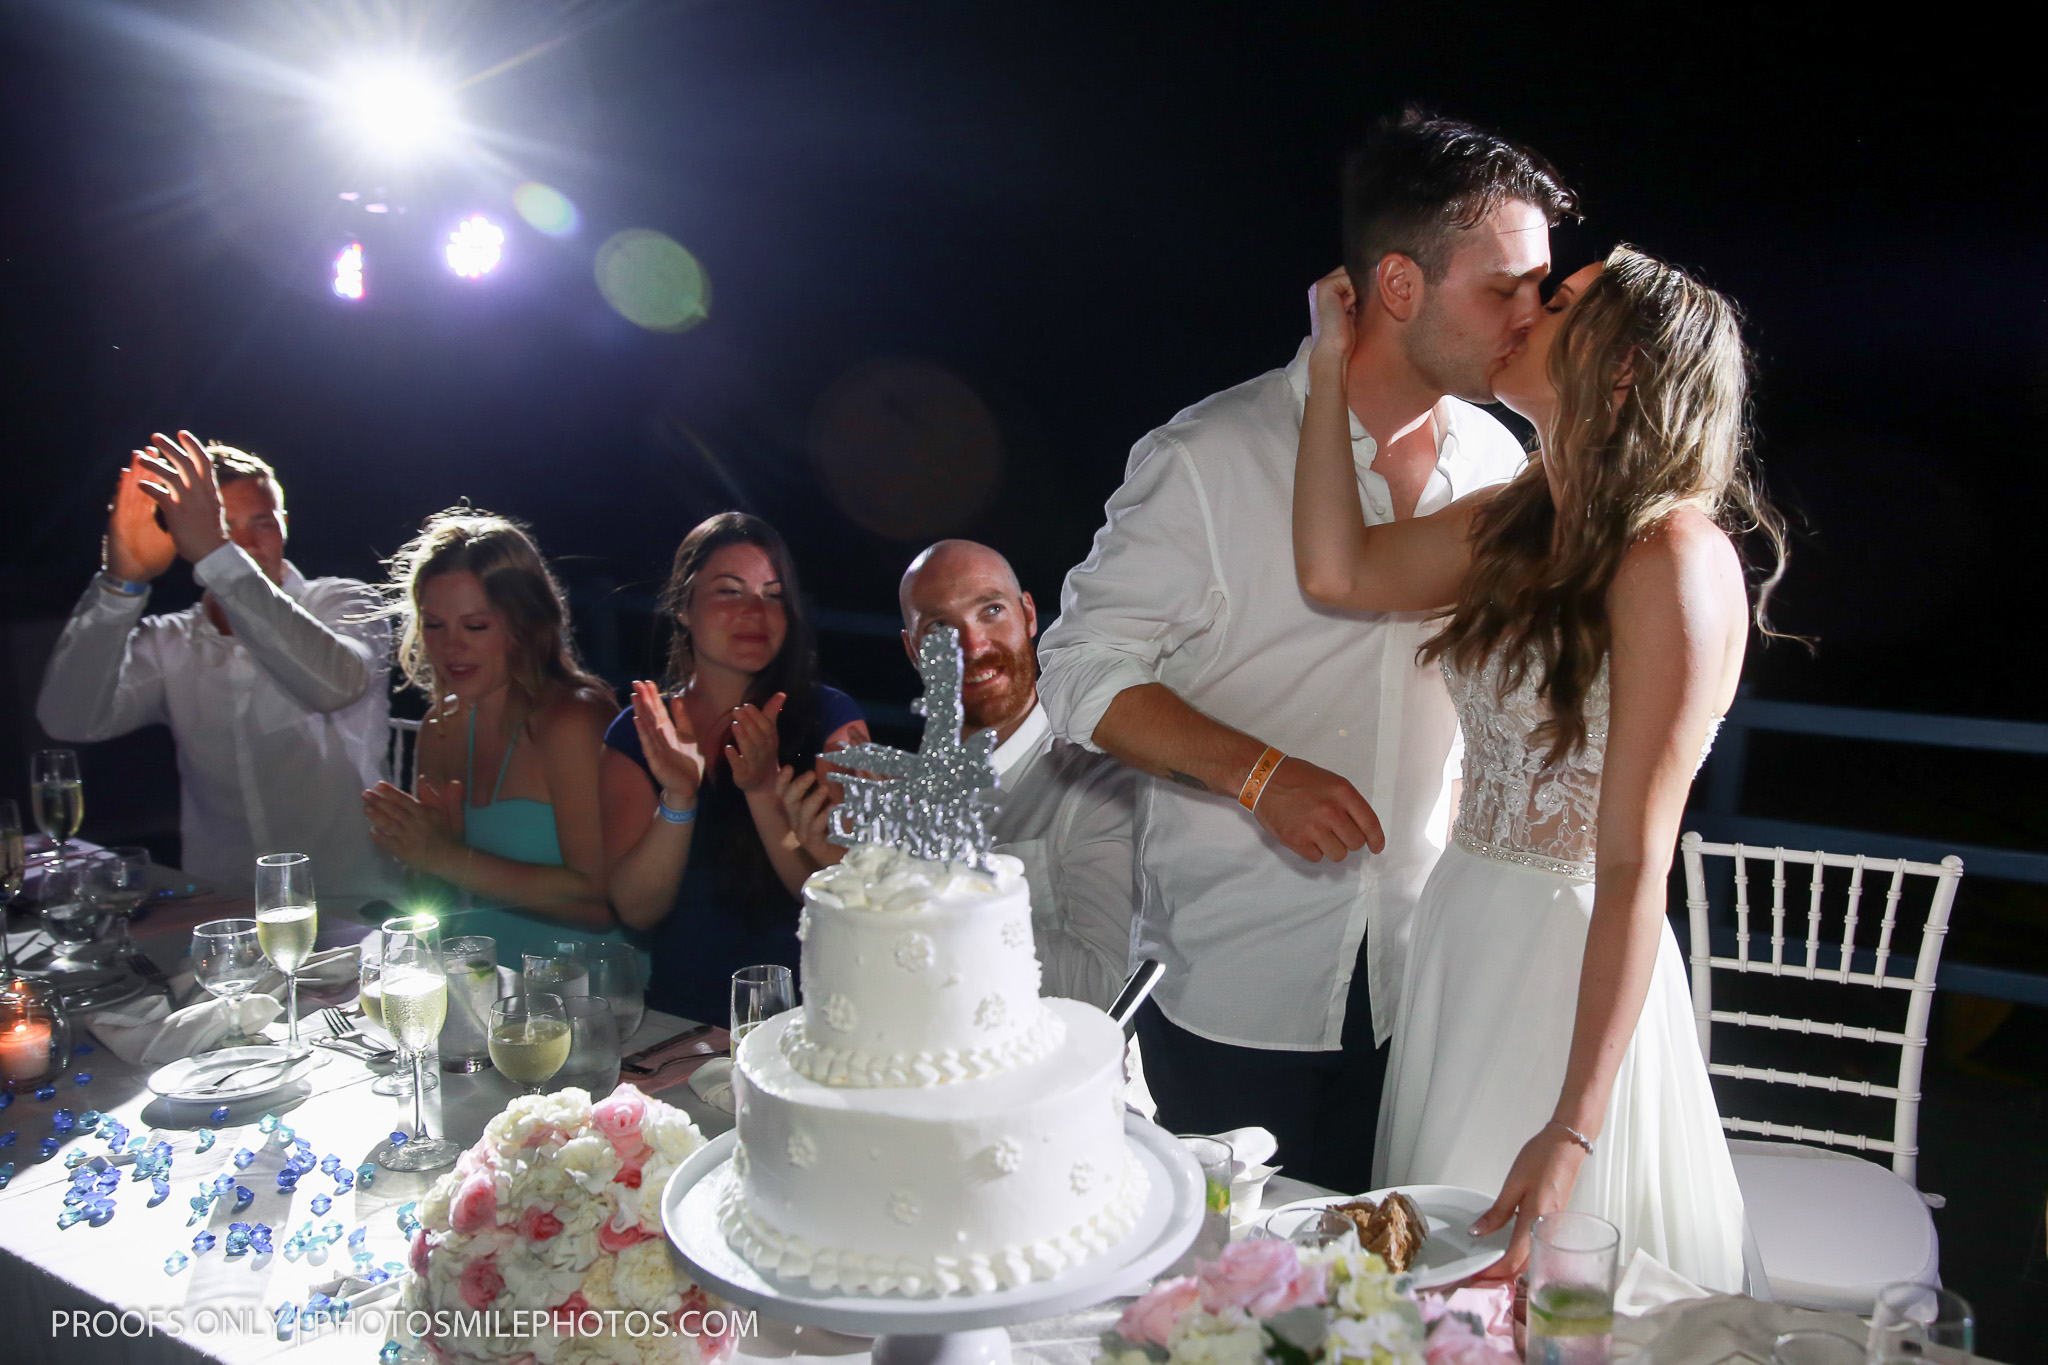 Grand Oasis Cancun Weddings, Cancun photographer, destination weddings Cancun, beach weddings Mexico, Lidia Grosso photography, cake cutting photos